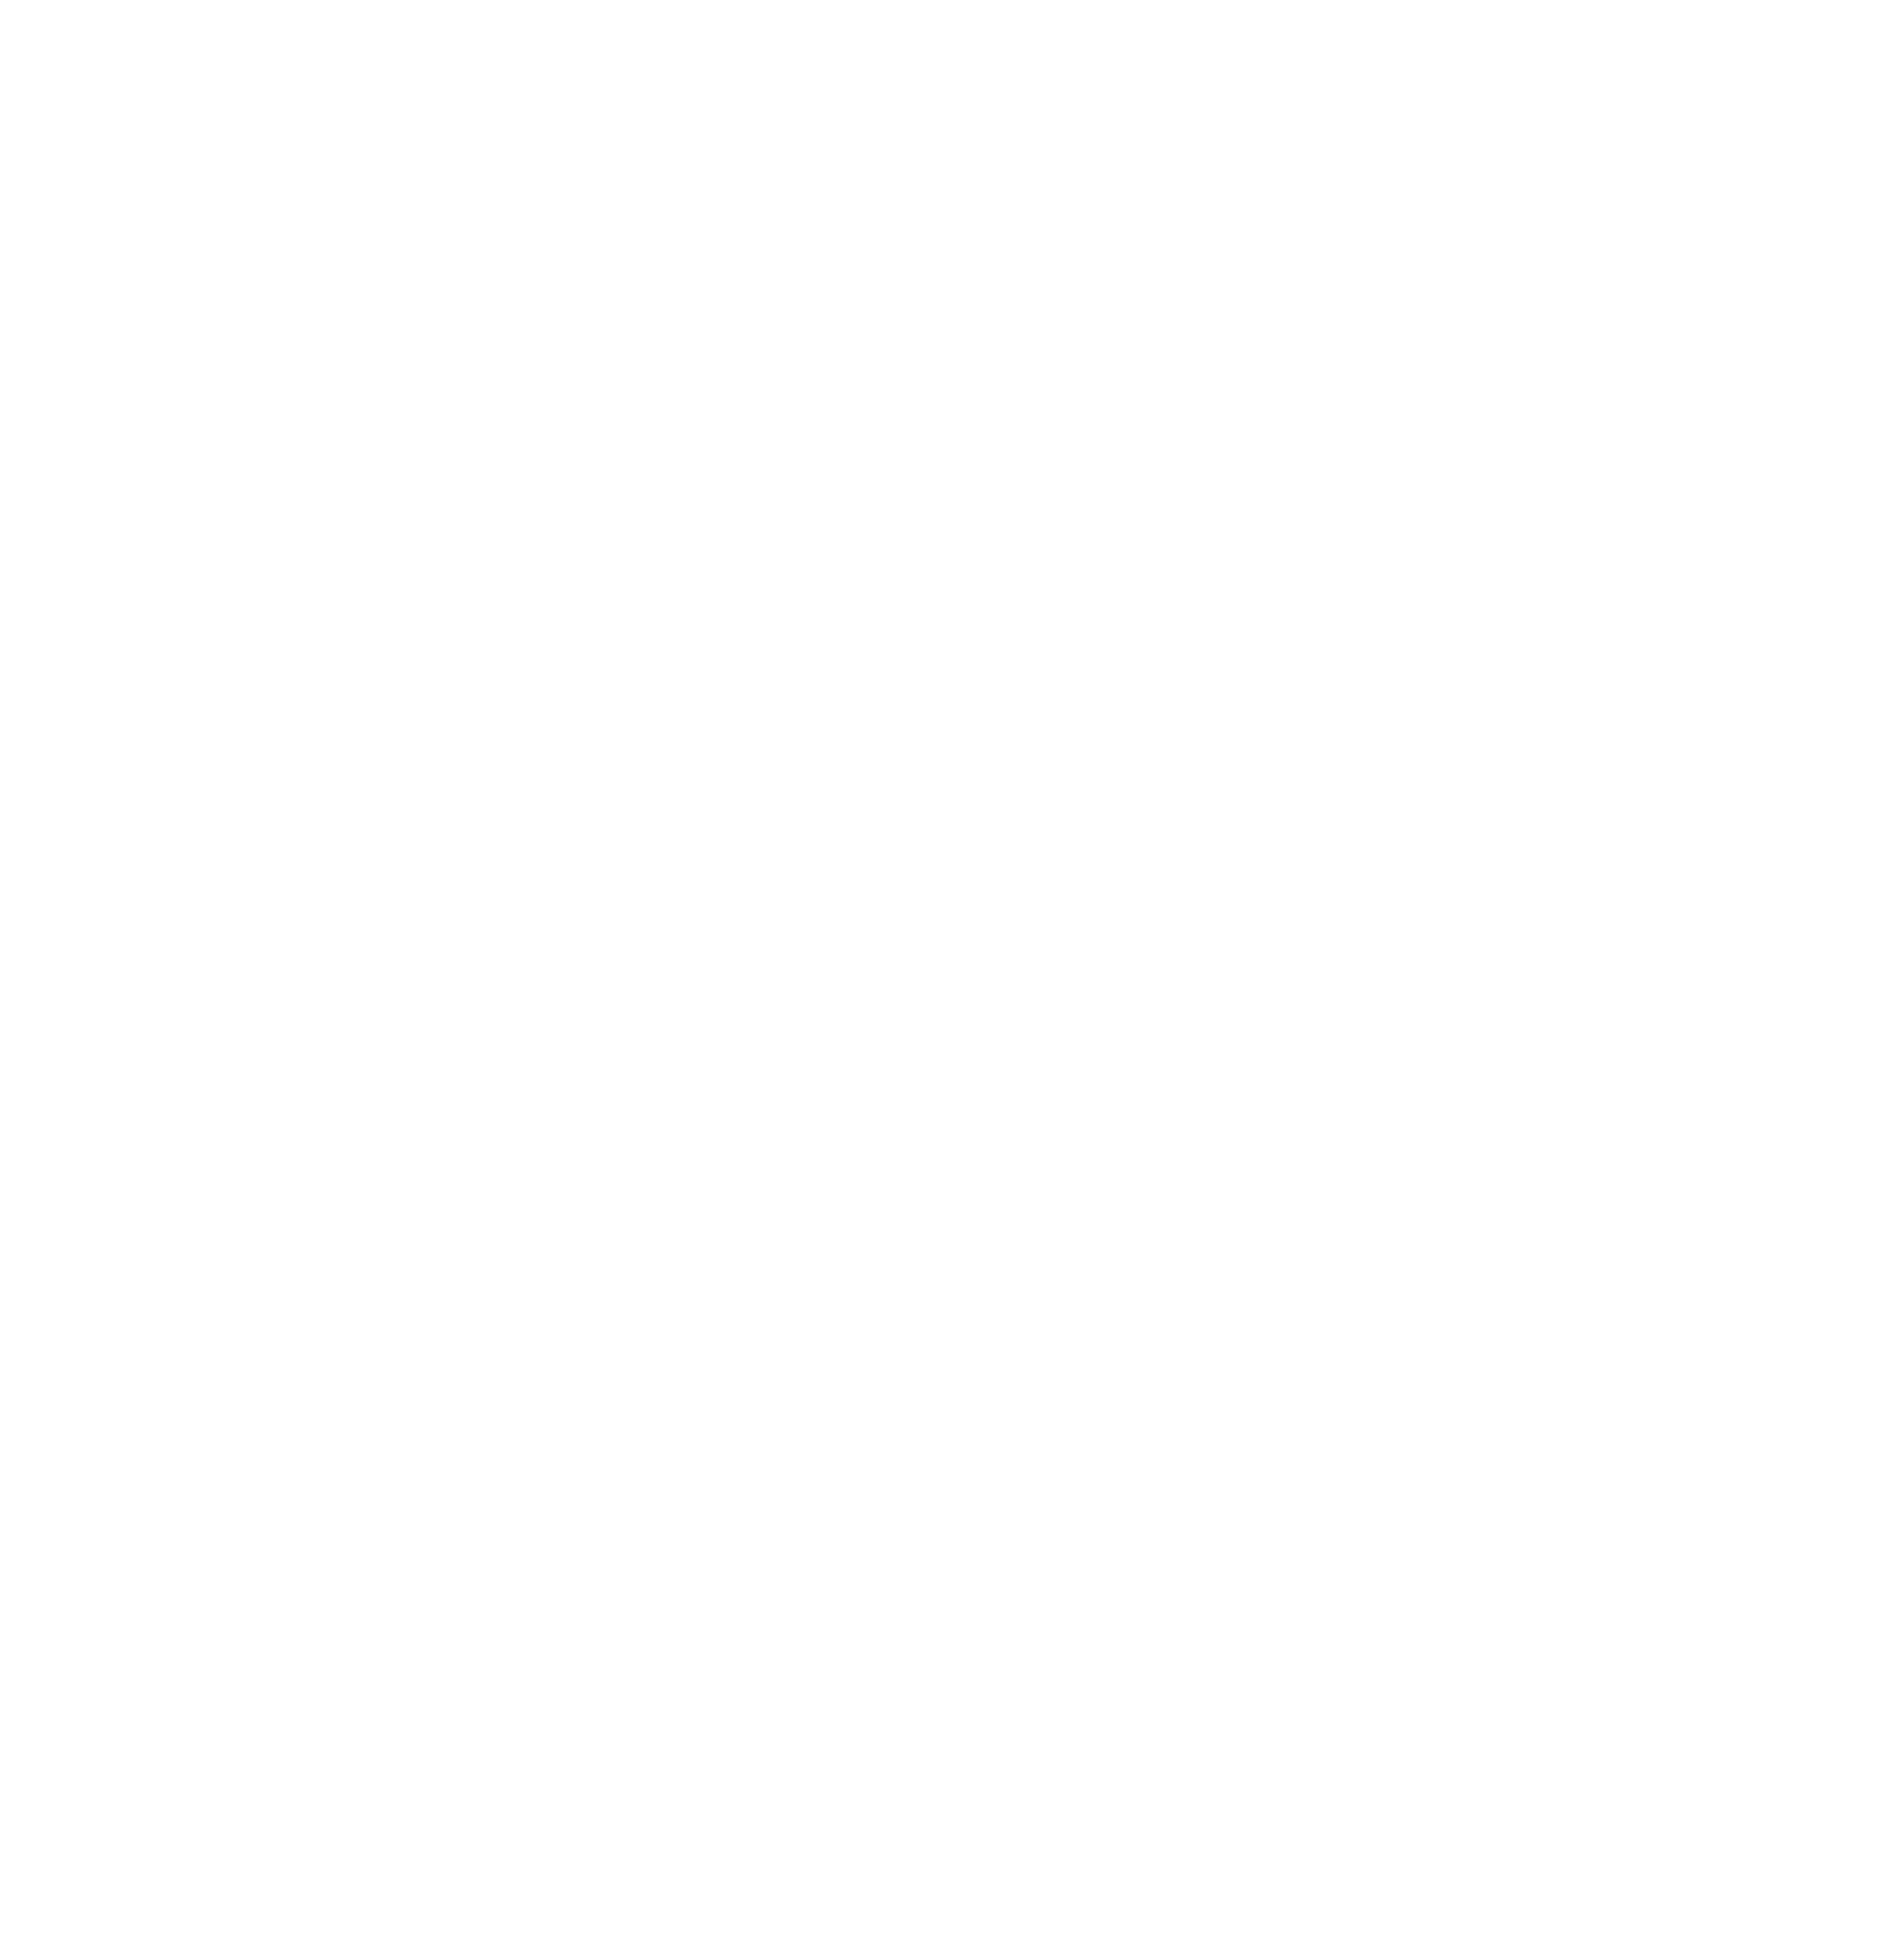 Pushingink uses a holistic approach to brand marketing through strategy, creative and purpose.